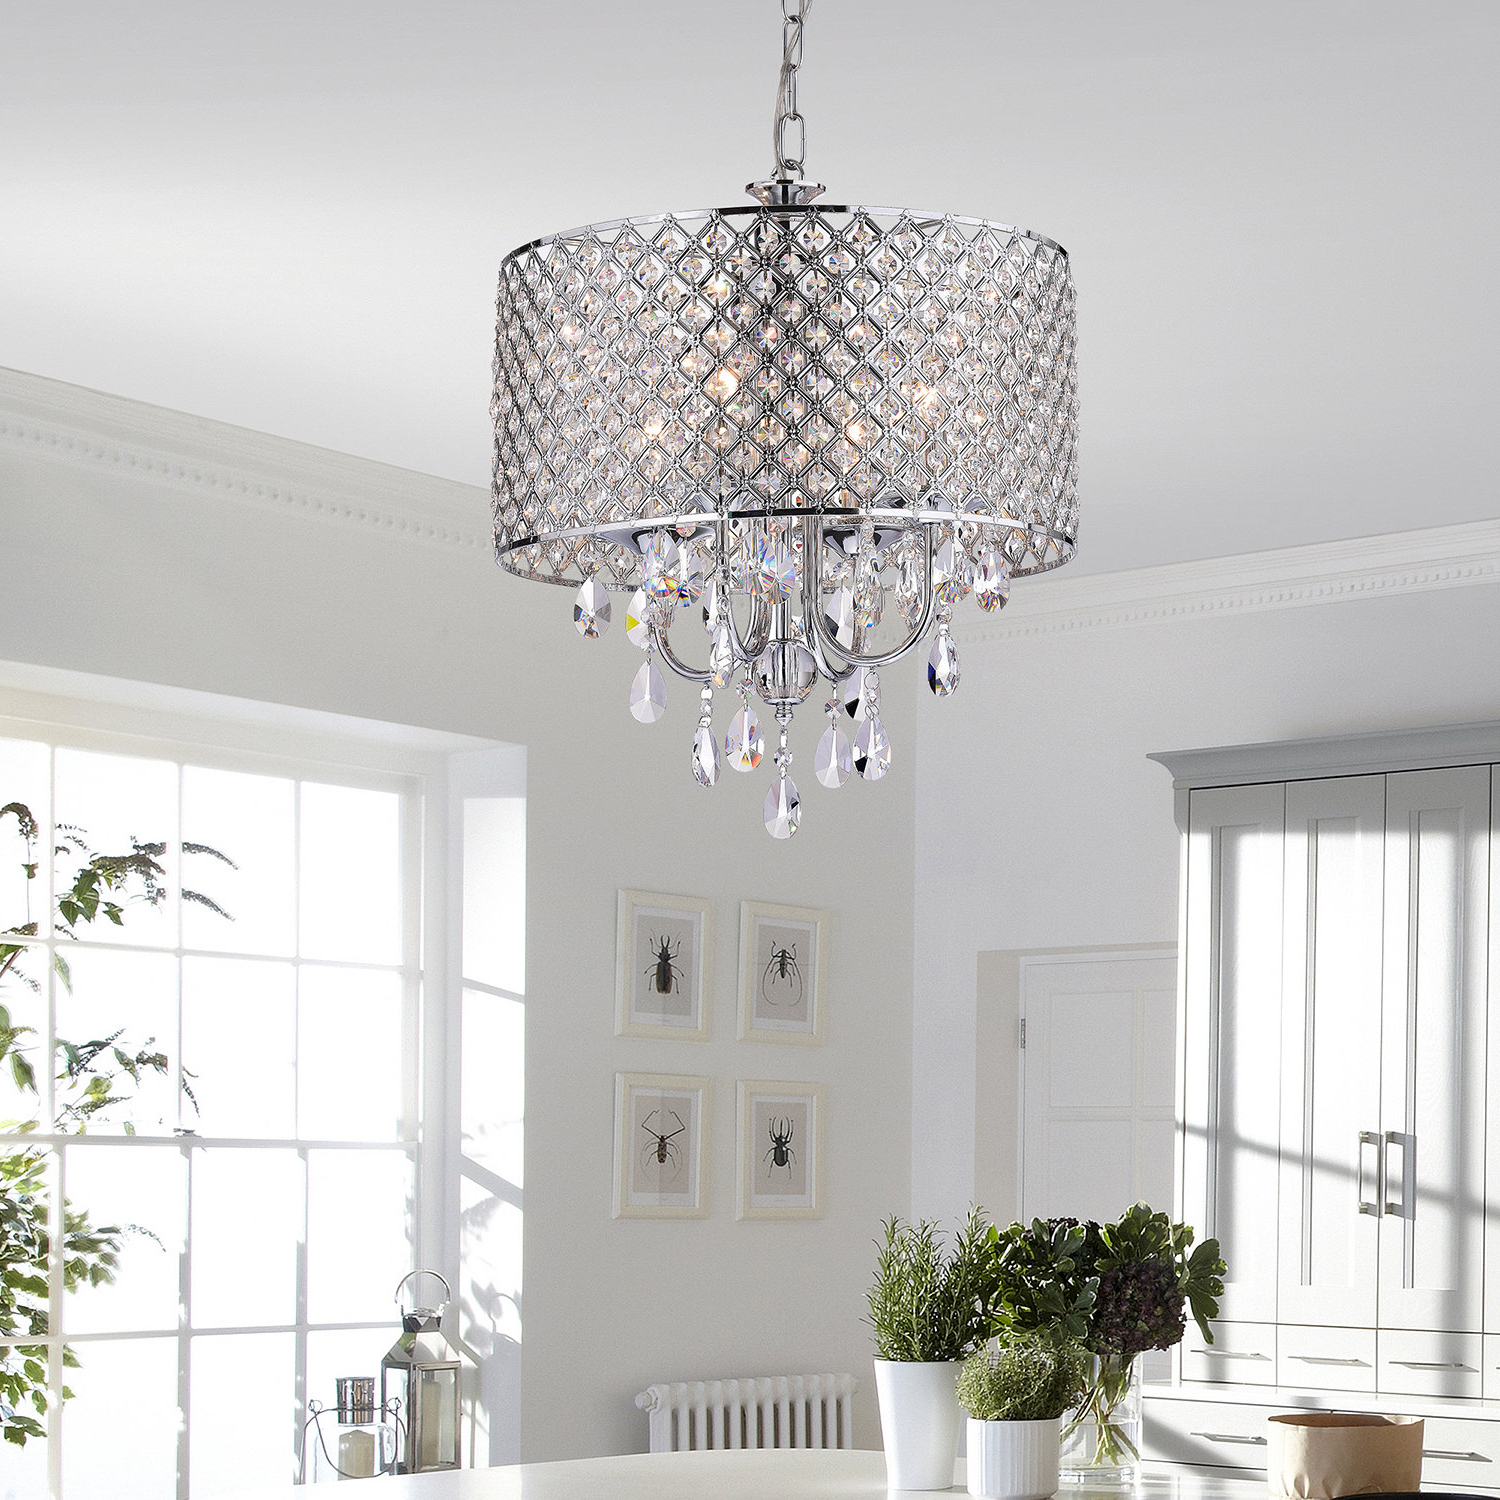 Whitten 4 Light Crystal Chandeliers With Regard To Latest Crystal Calypso Lighting (View 19 of 20)